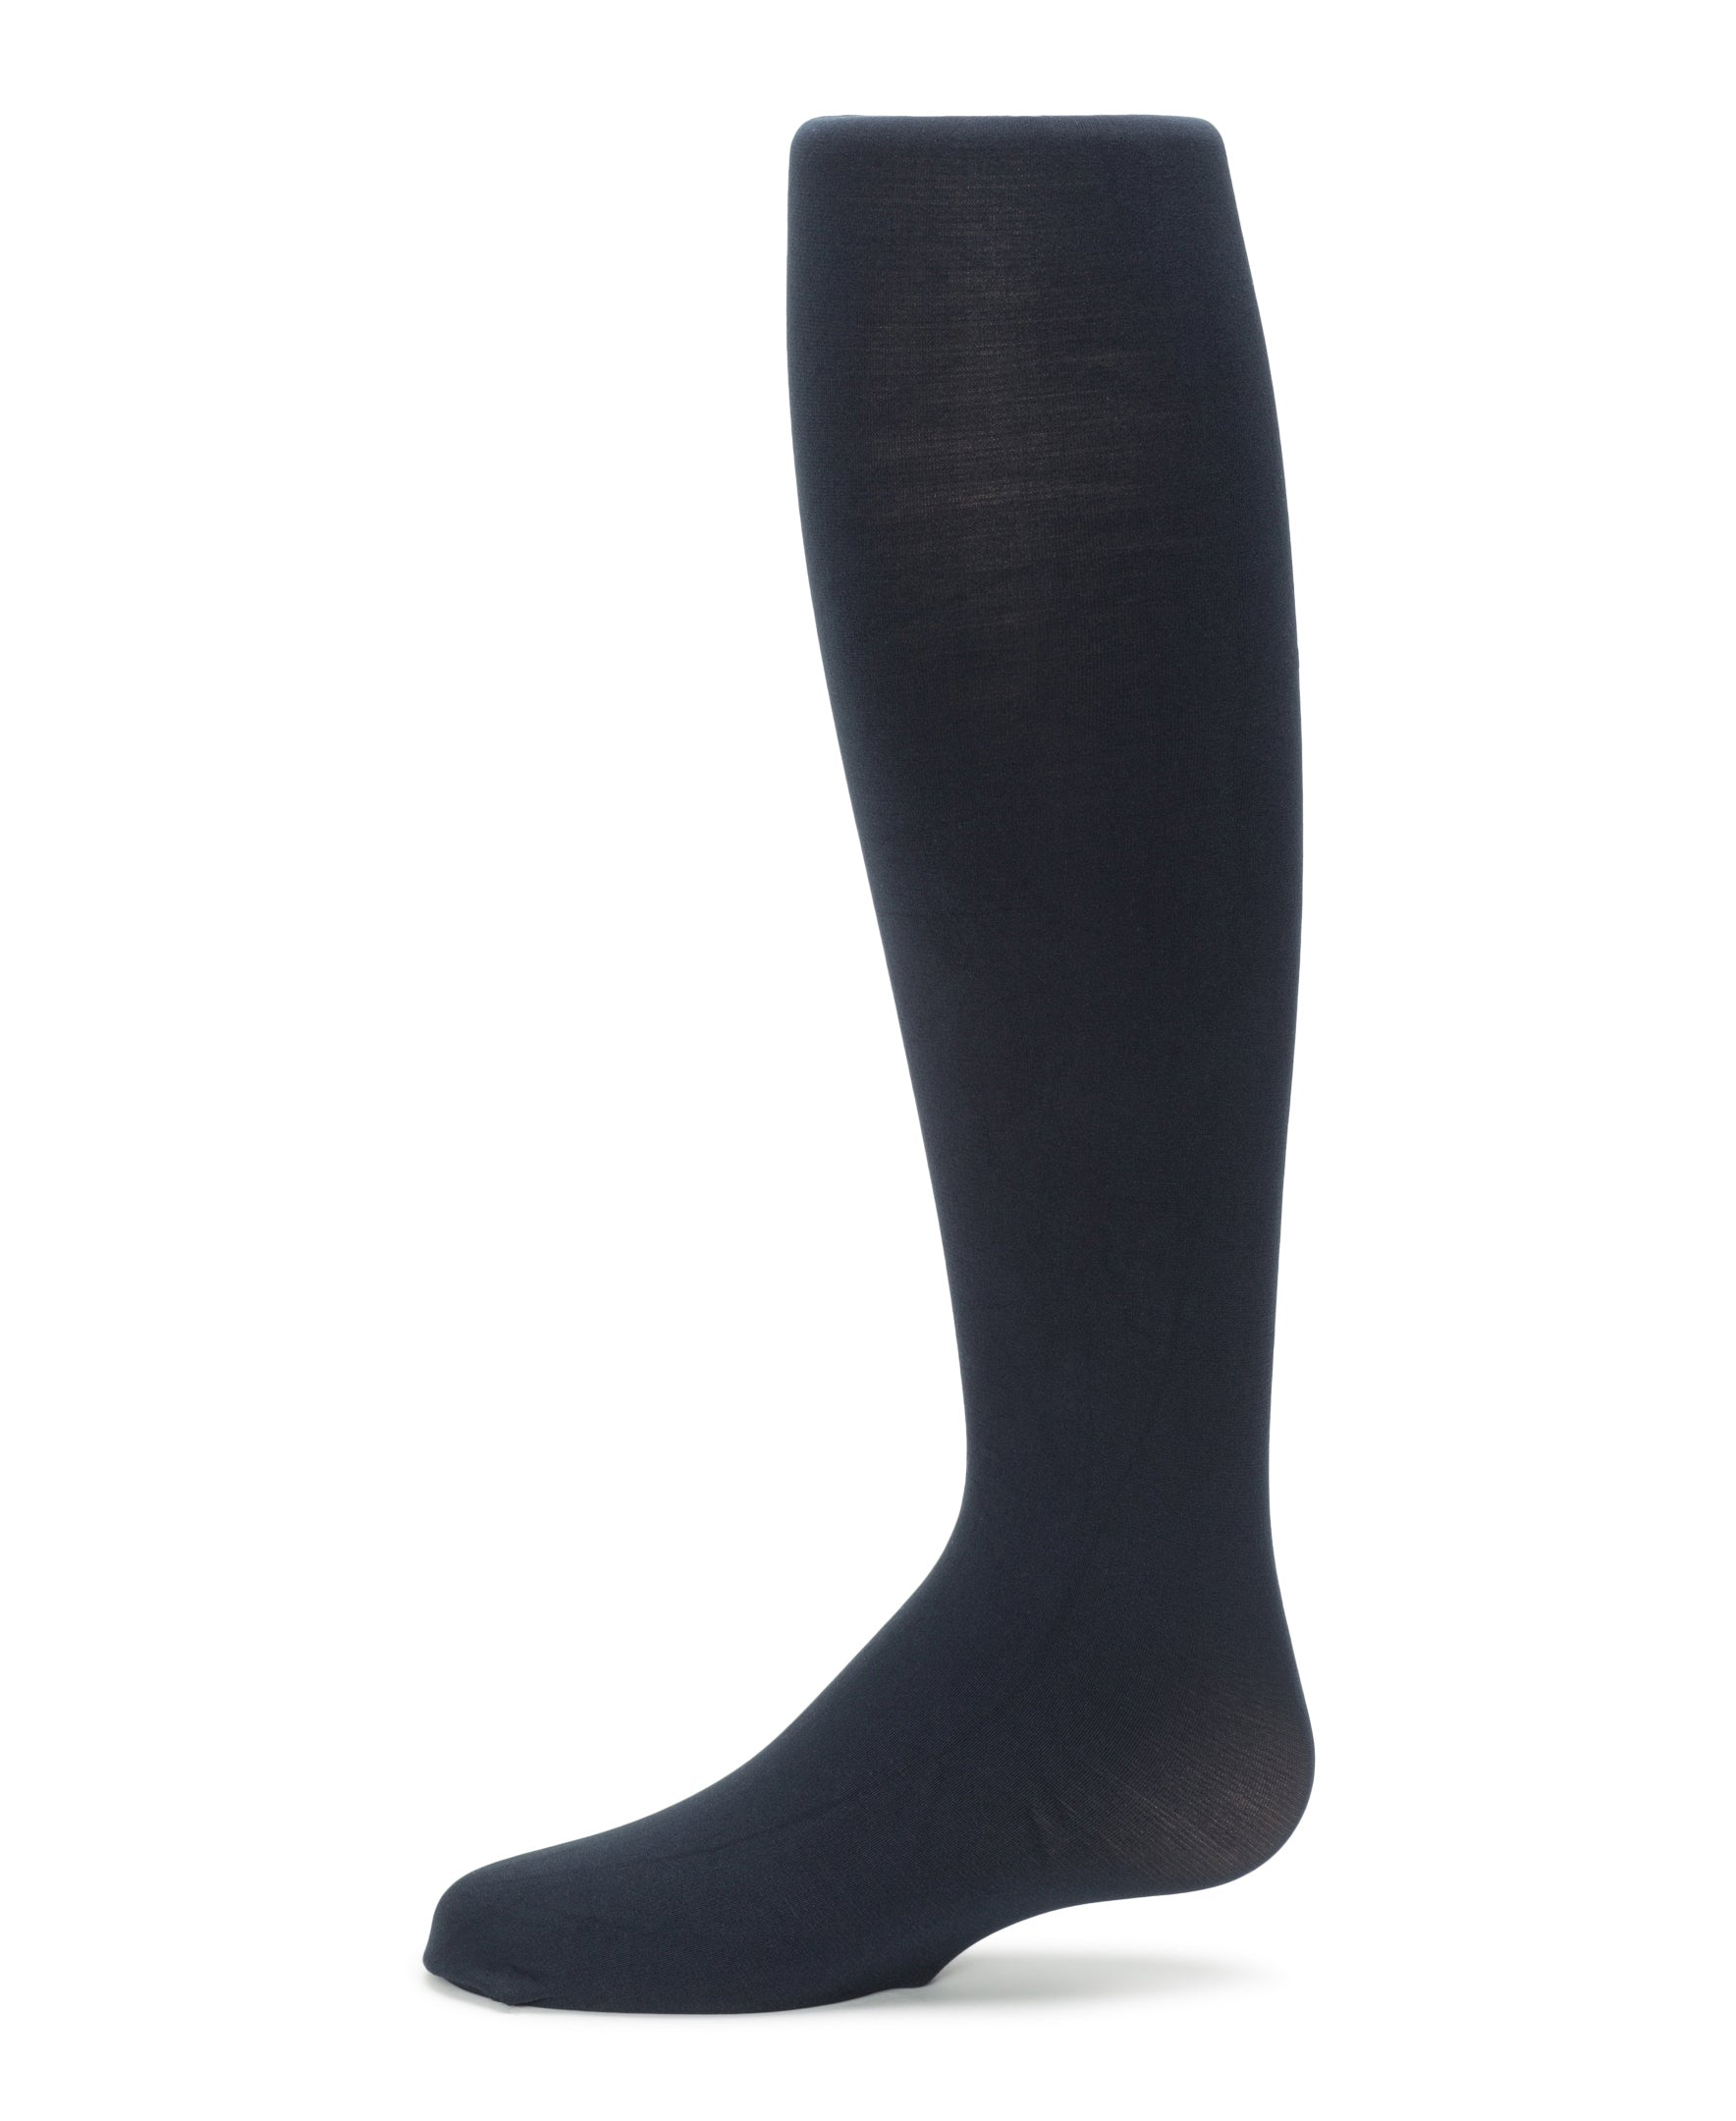 Flat Knit (Comfortoe) Tights, Navy